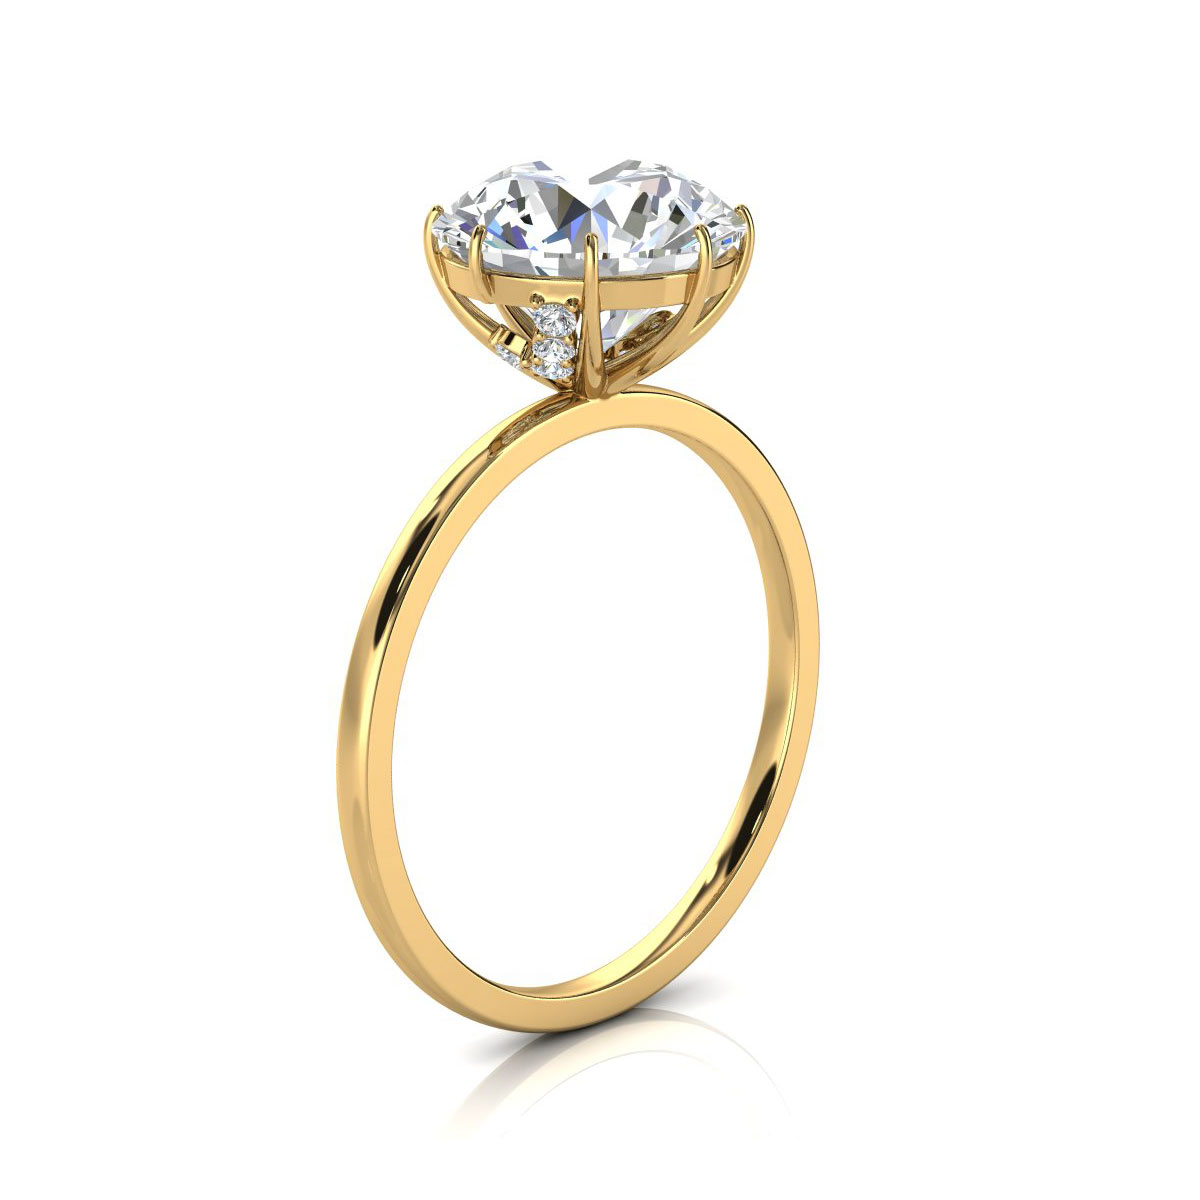 18K Yellow Gold Naomi Rustic Organic Design Solitaire Diamond Ring (  0.07 ct. tw)